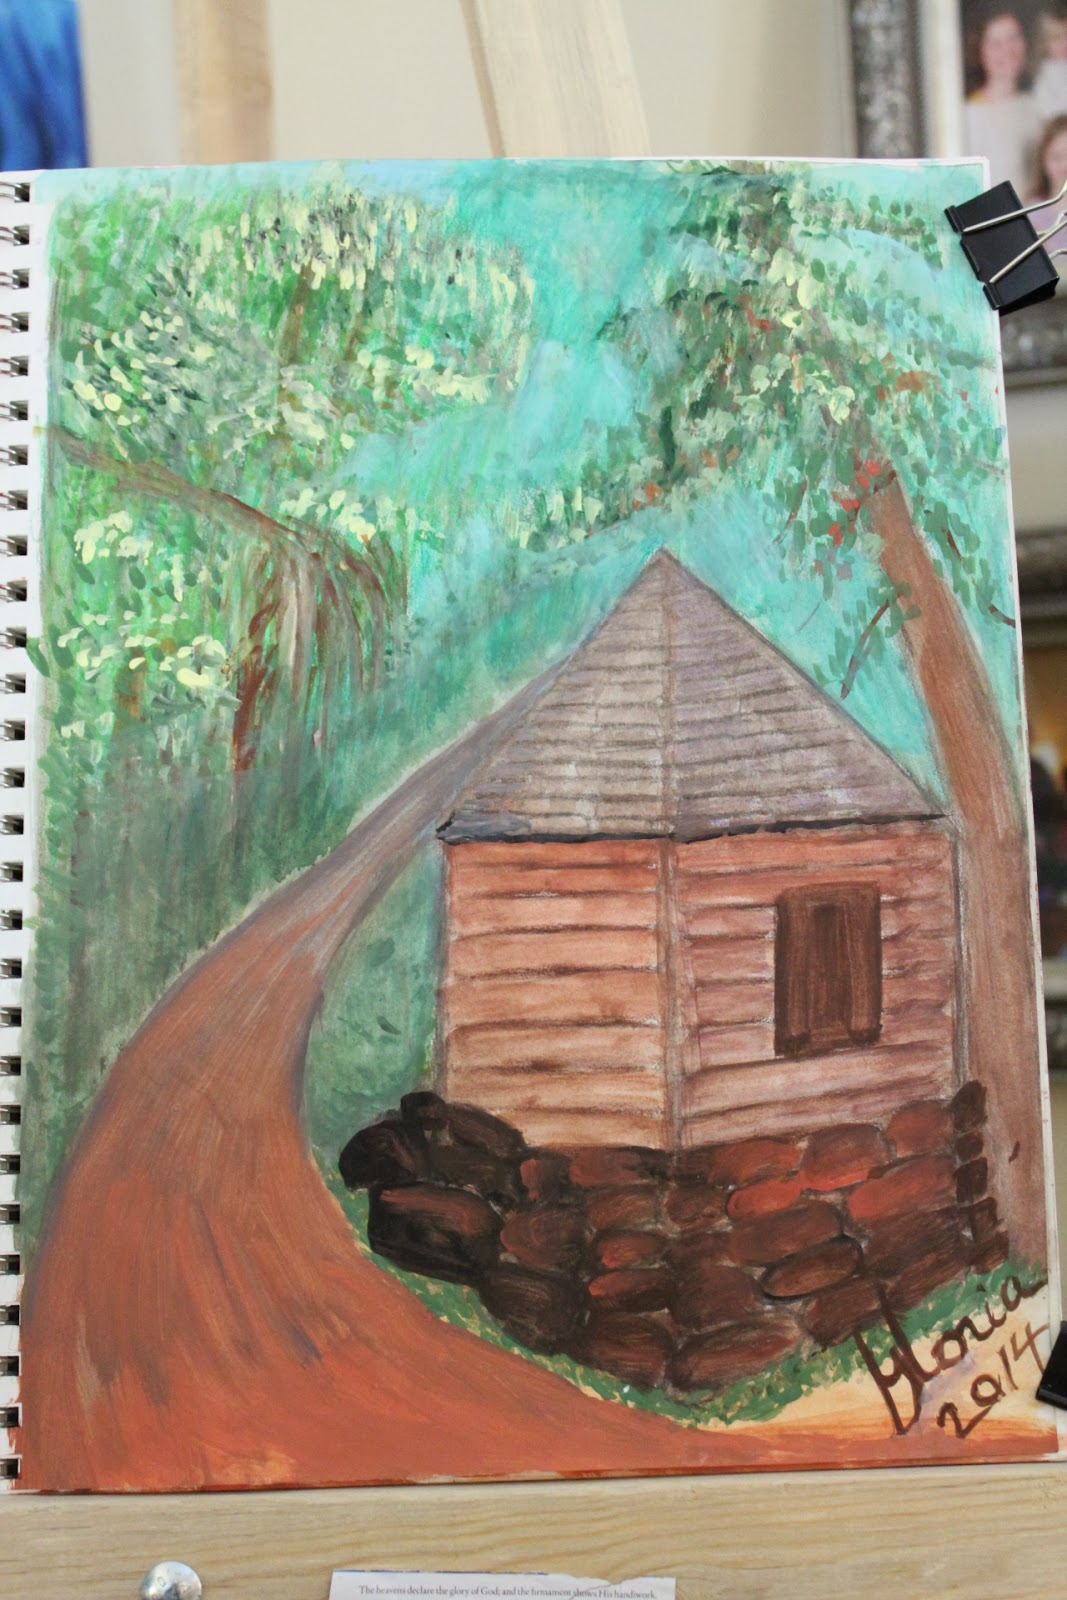 The Red Rock House sketch by Gloria Poole of Missouri; 2014